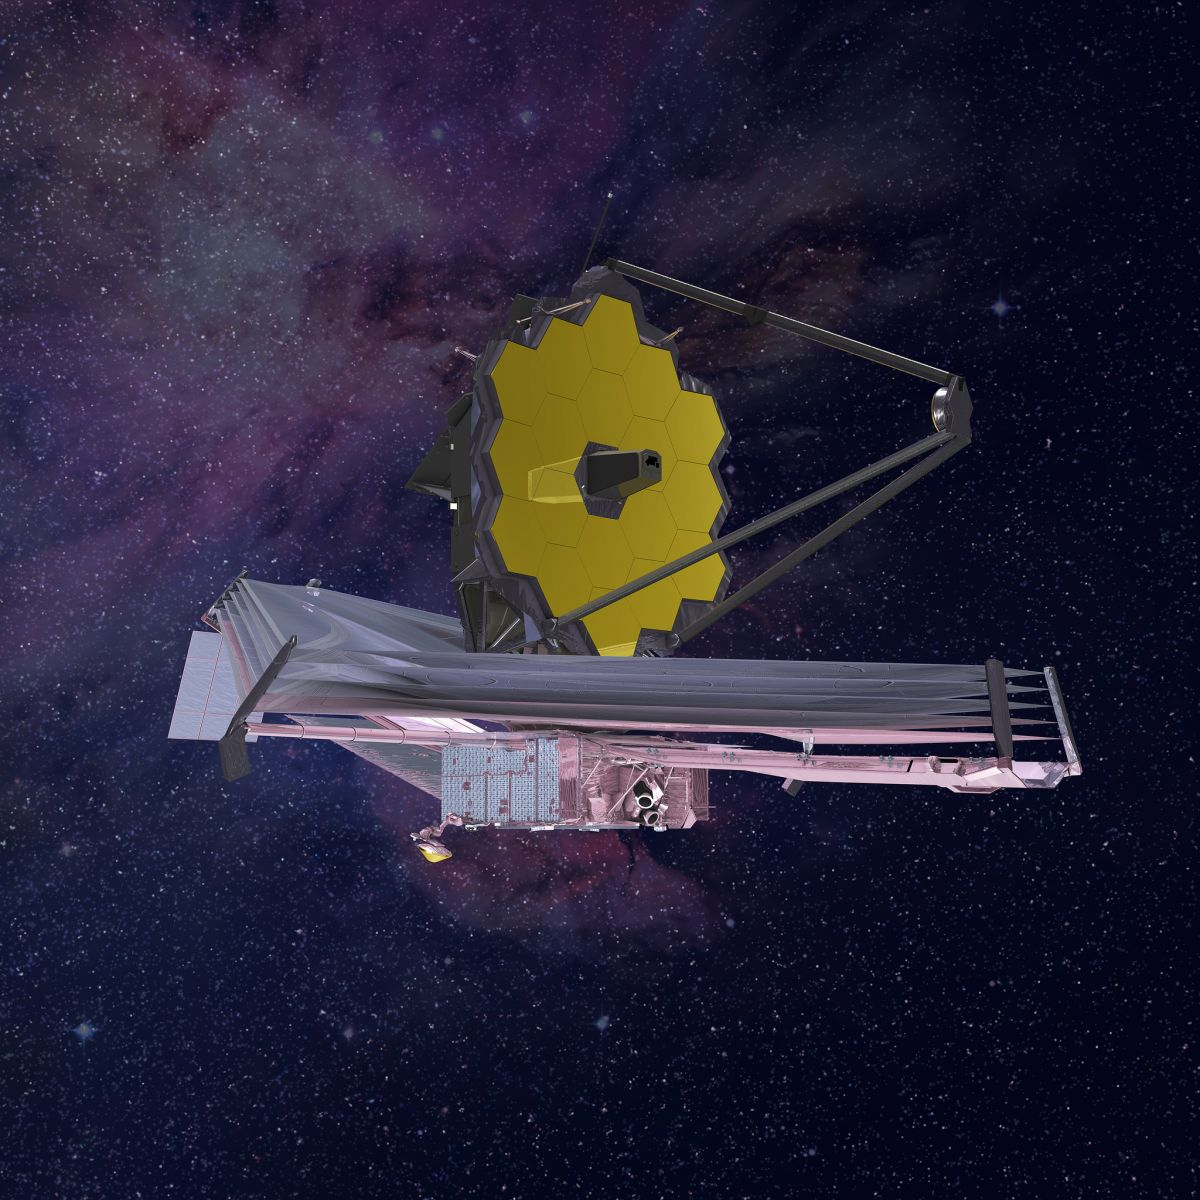 NASA's James Webb Space Telescope will face '29 days on the edge' after launch (video)